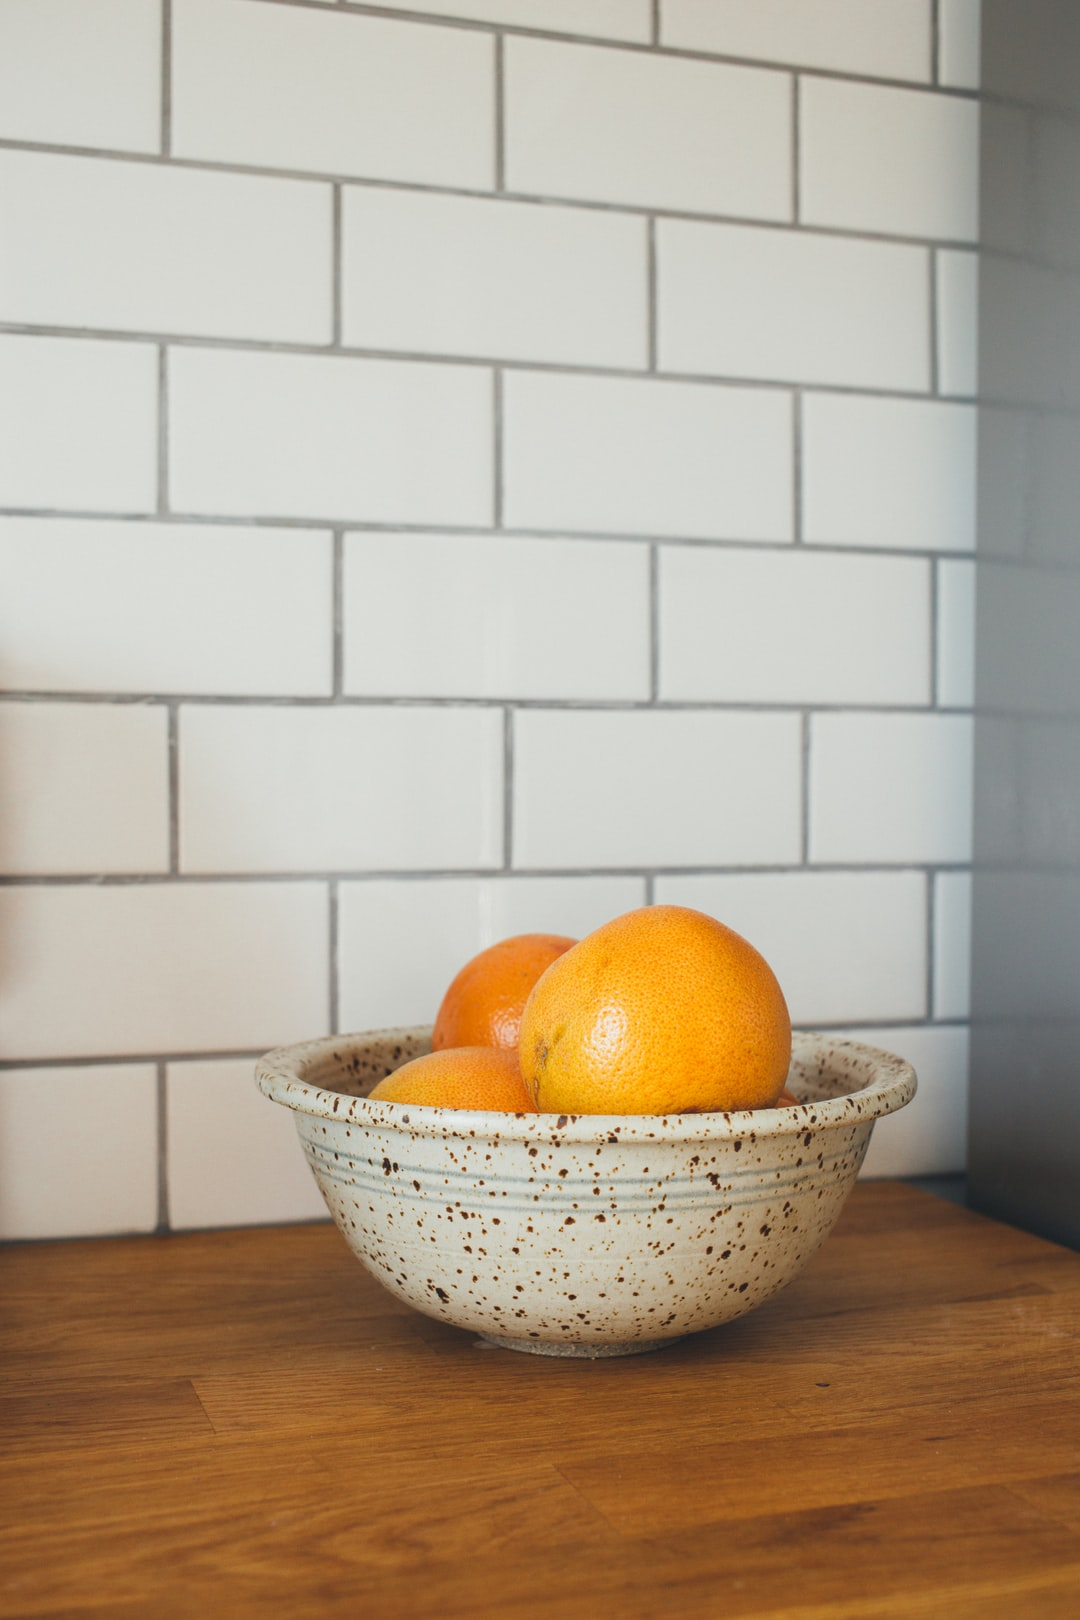 A bowl of fruit on the kitchen counter